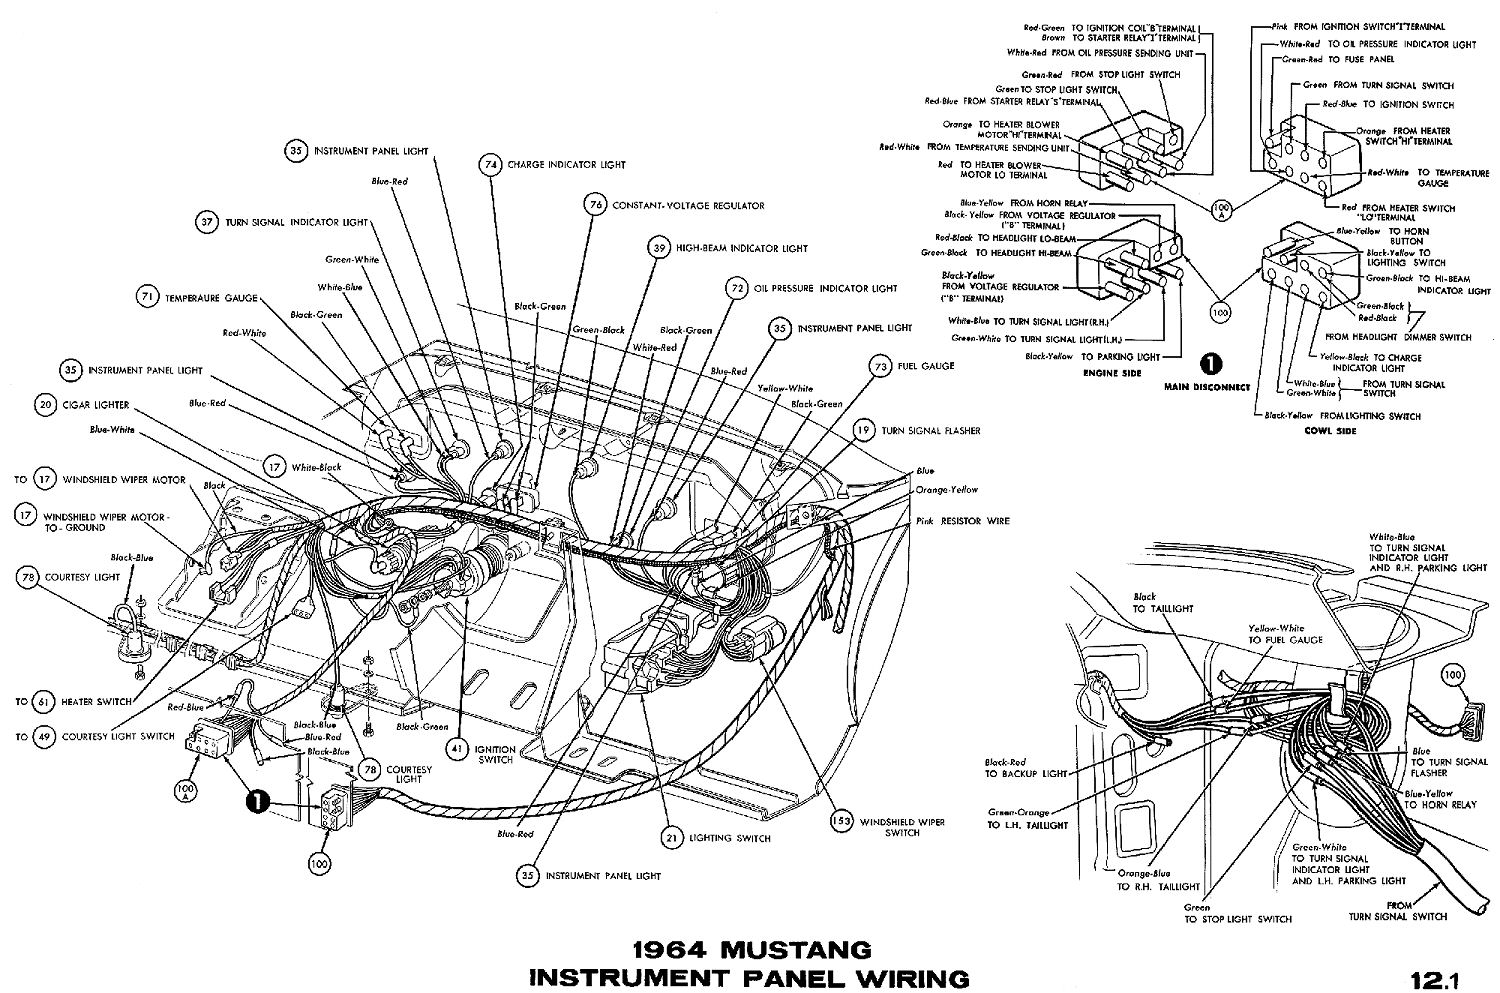 66 mustang ignition wiring diagram 2003 chevy silverado 1500 radio ke free engine image for